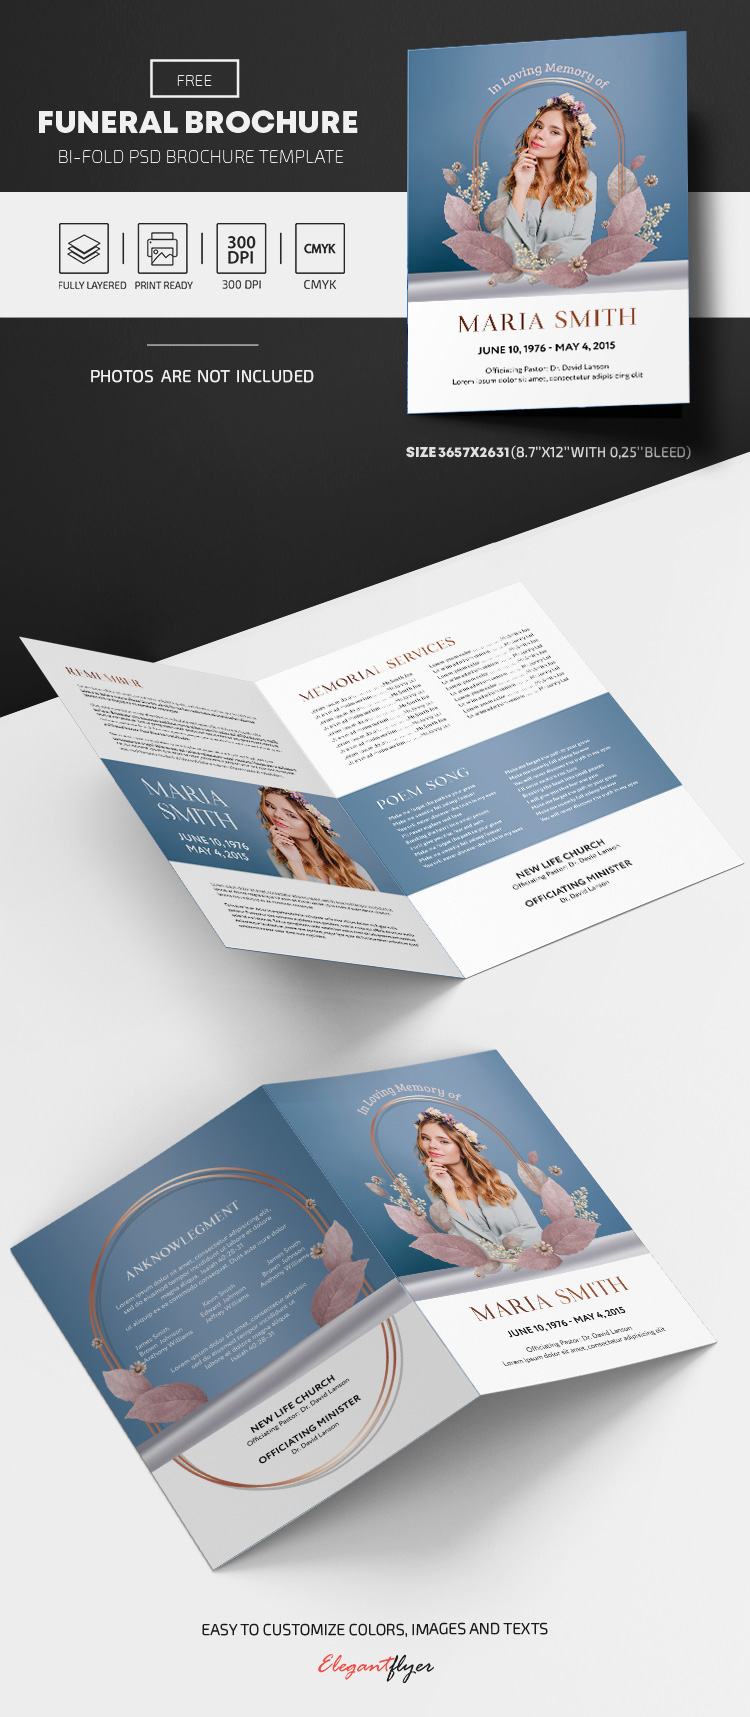 Funeral Program – Free Bi-Fold Brochure PSD Template